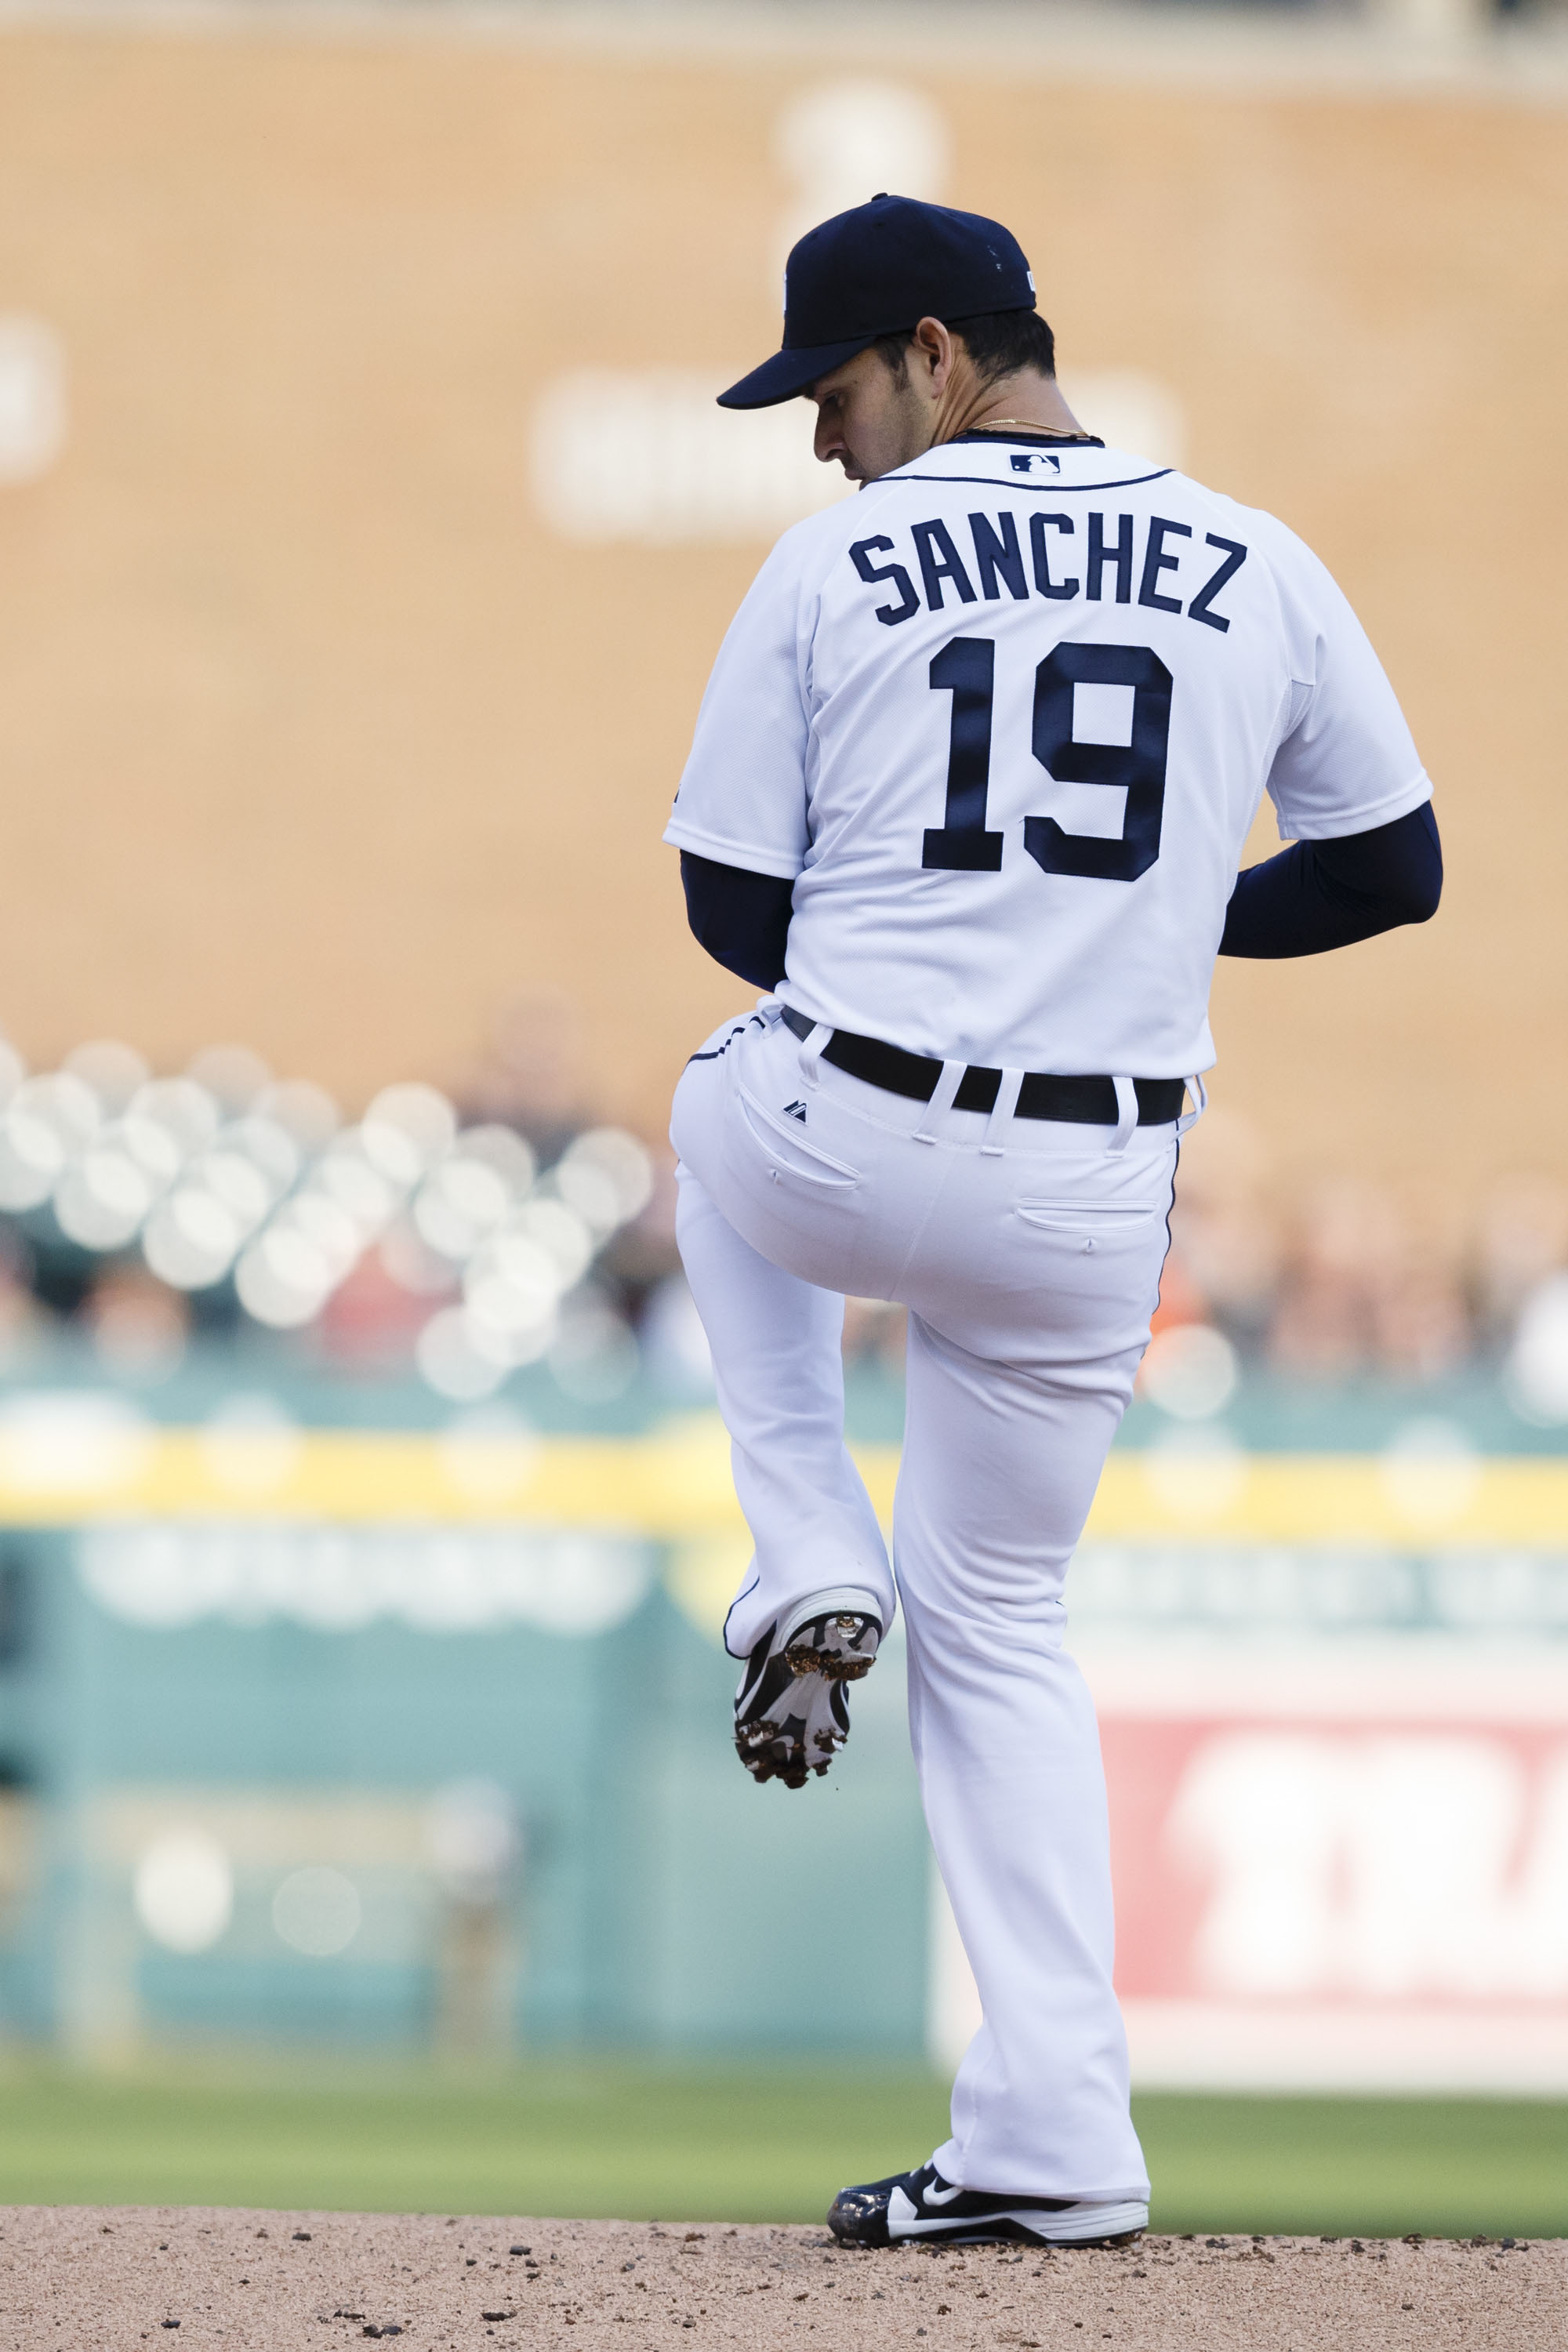 Anibal Sanchez dominated April. (USAT)